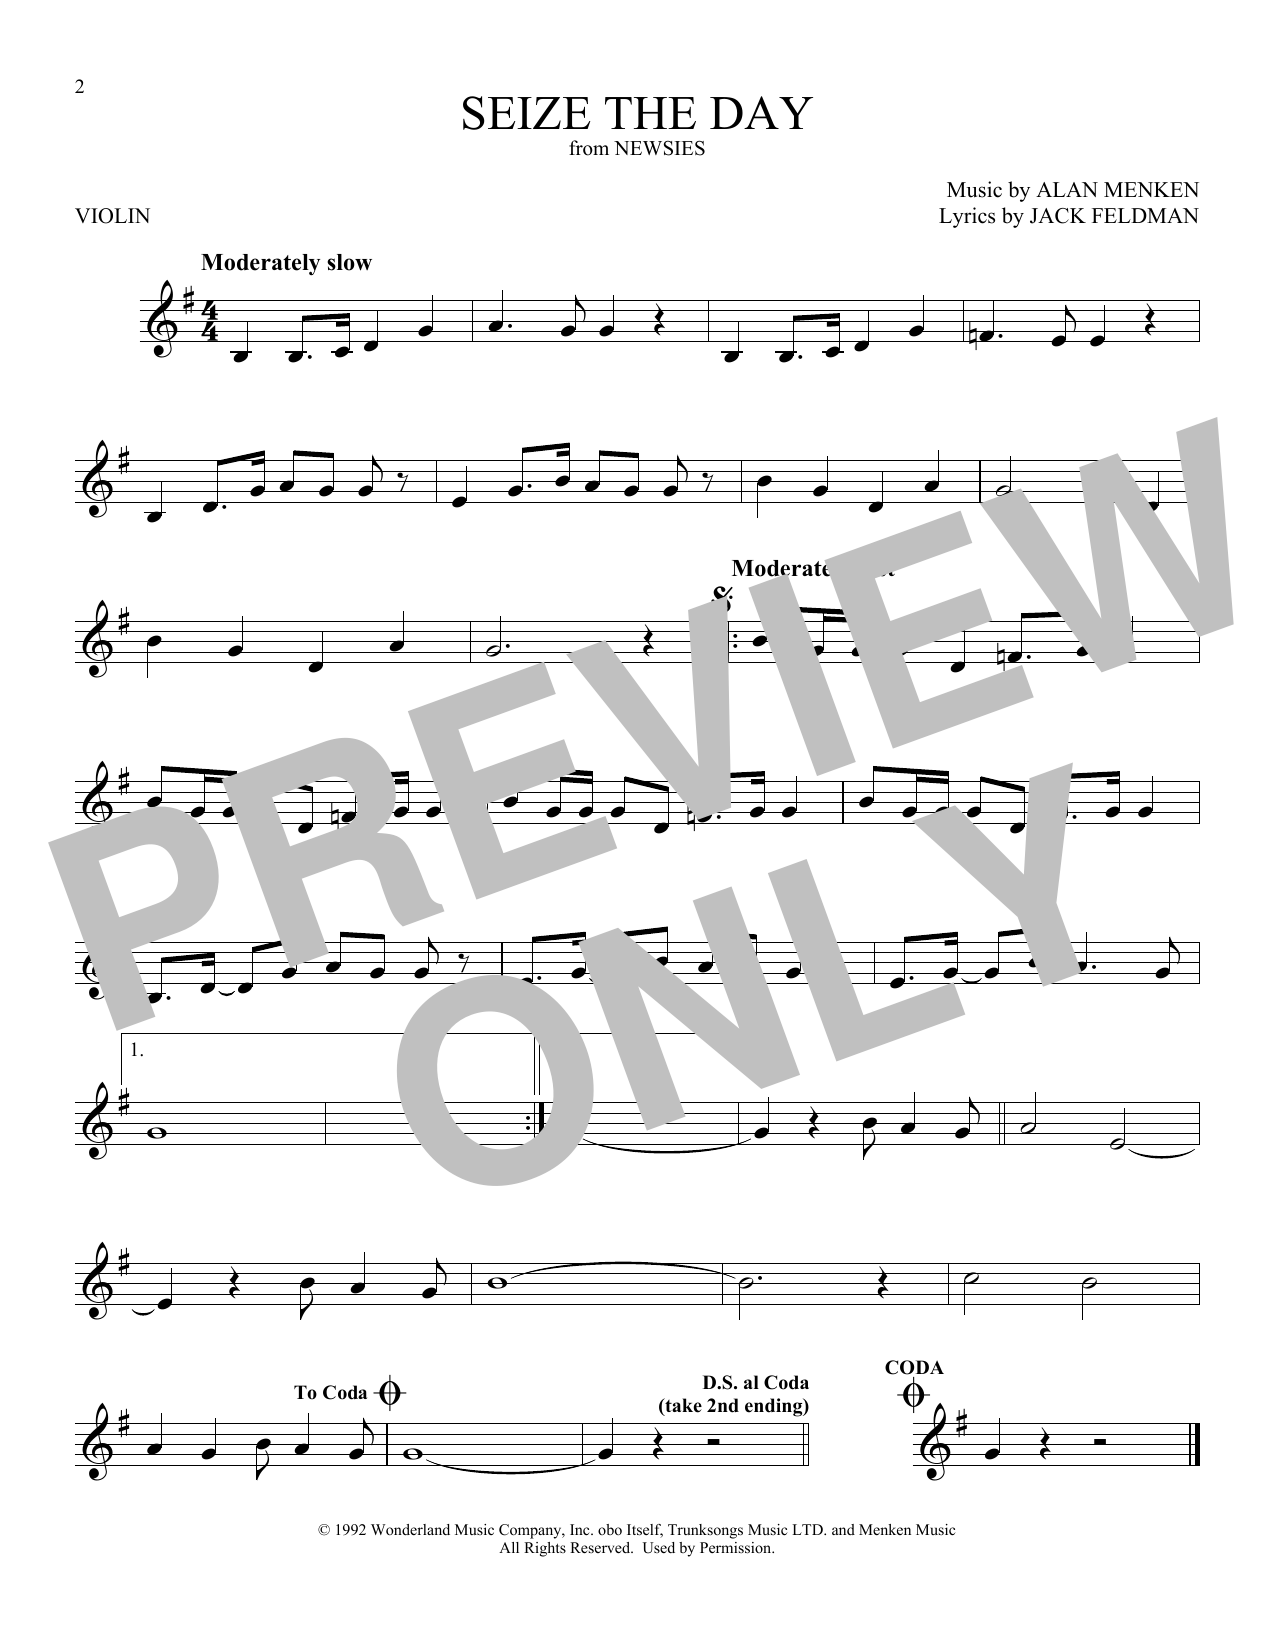 Seize The Day (Violin Solo) - Print Sheet Music Now